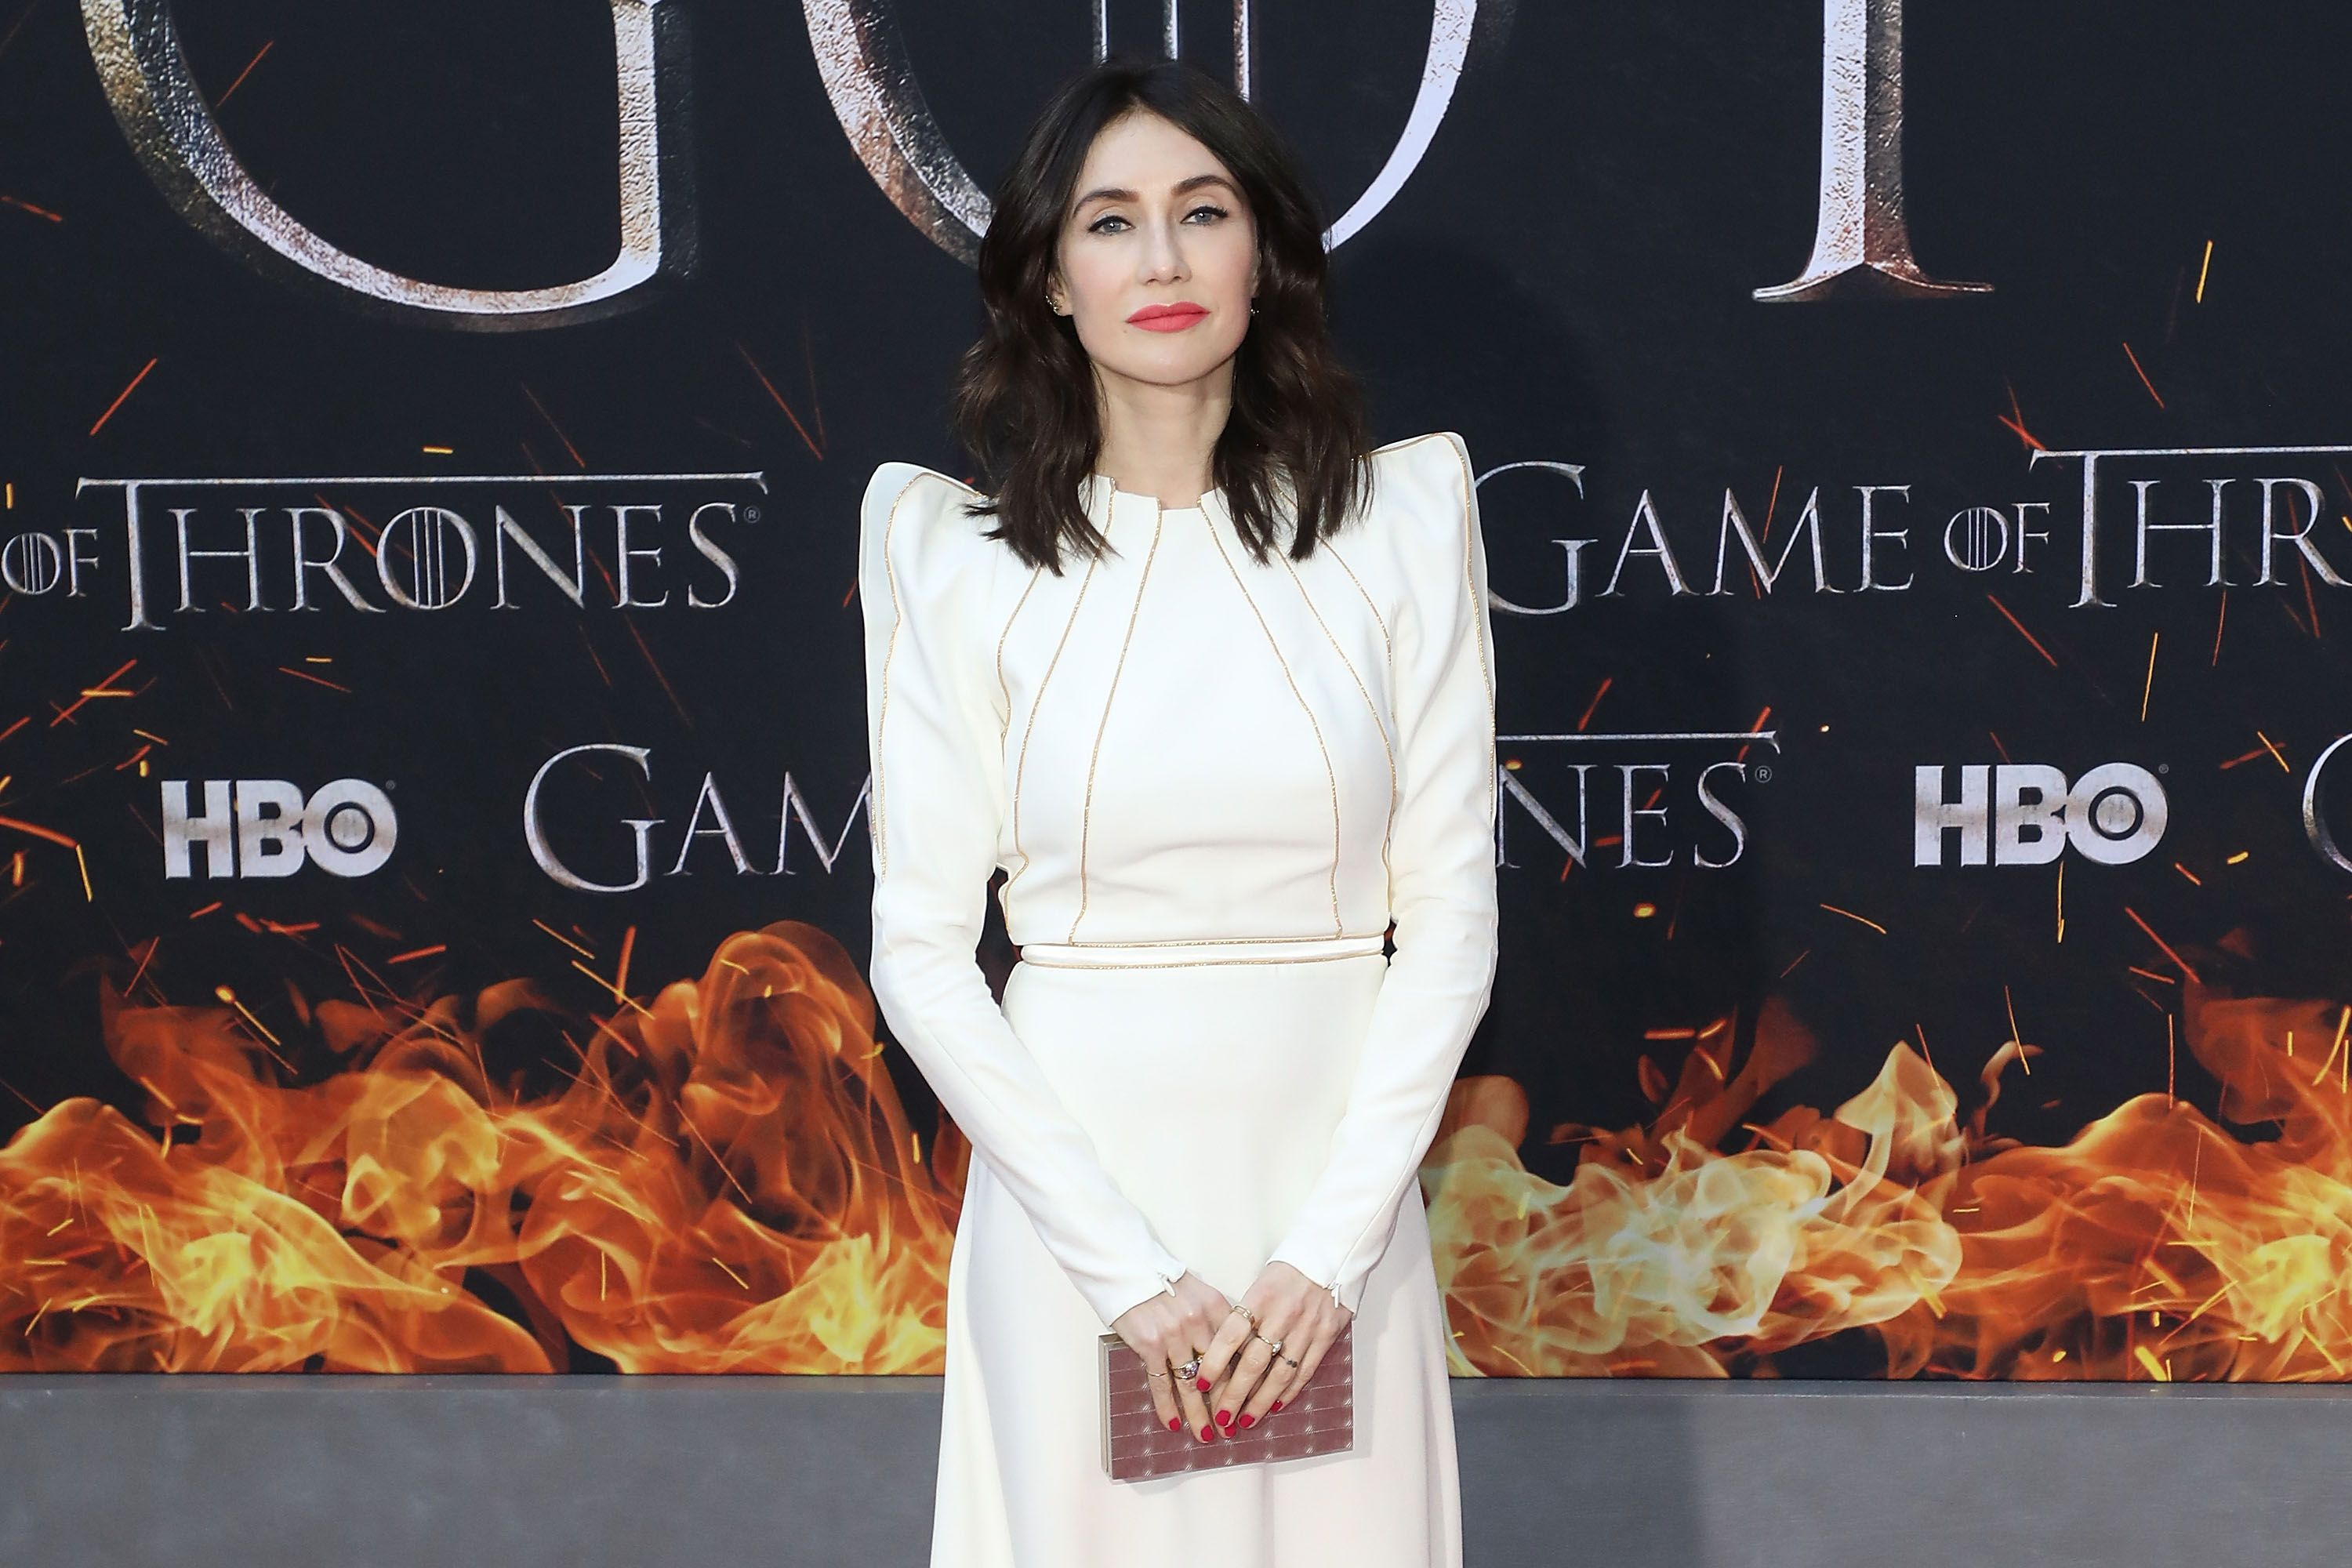 """Carice van Houten at the Season 8 premiere of """"Game of Thrones"""" in 2019 in New York City   Source: Getty Images"""